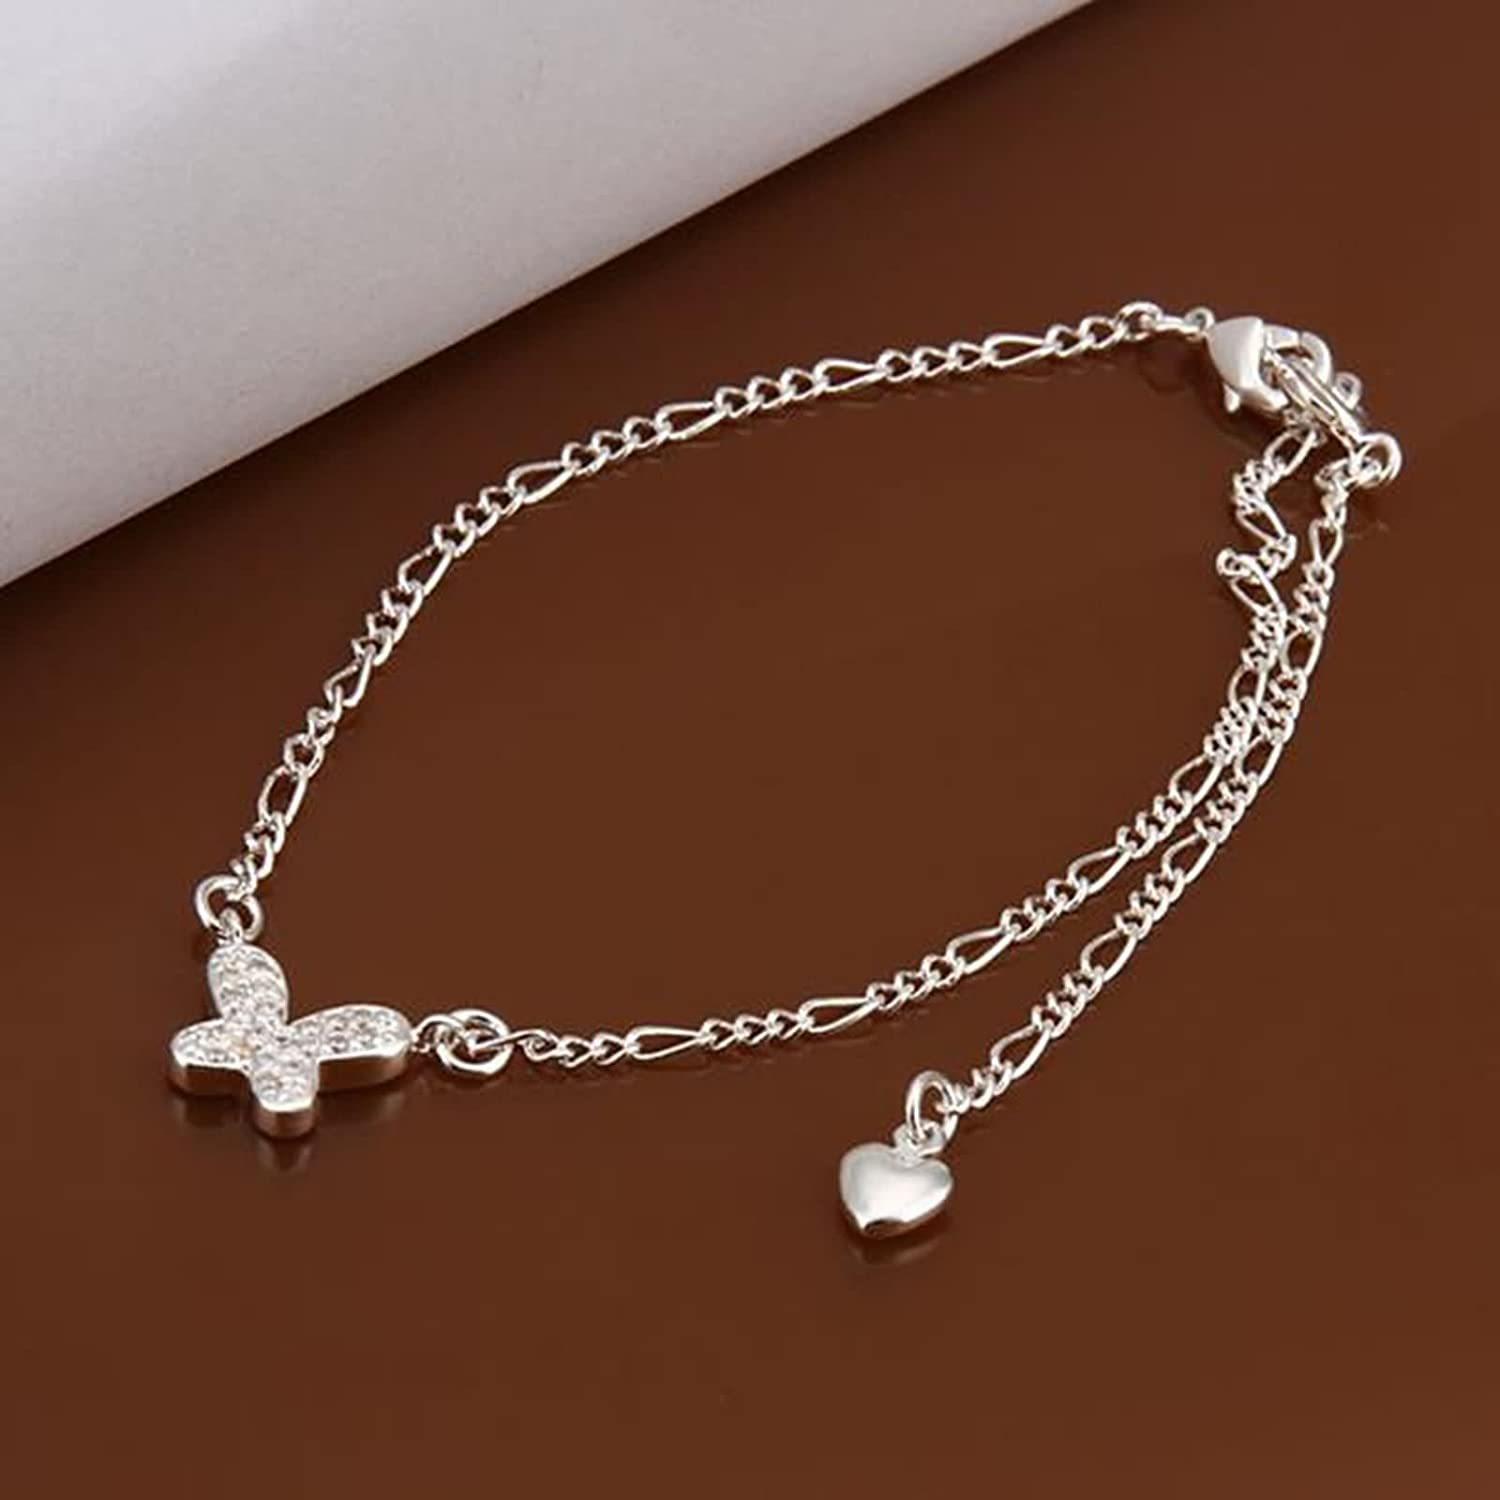 Bishilin Anklet Bracelet With Charms Butterfly anklet extender 1.4 CM